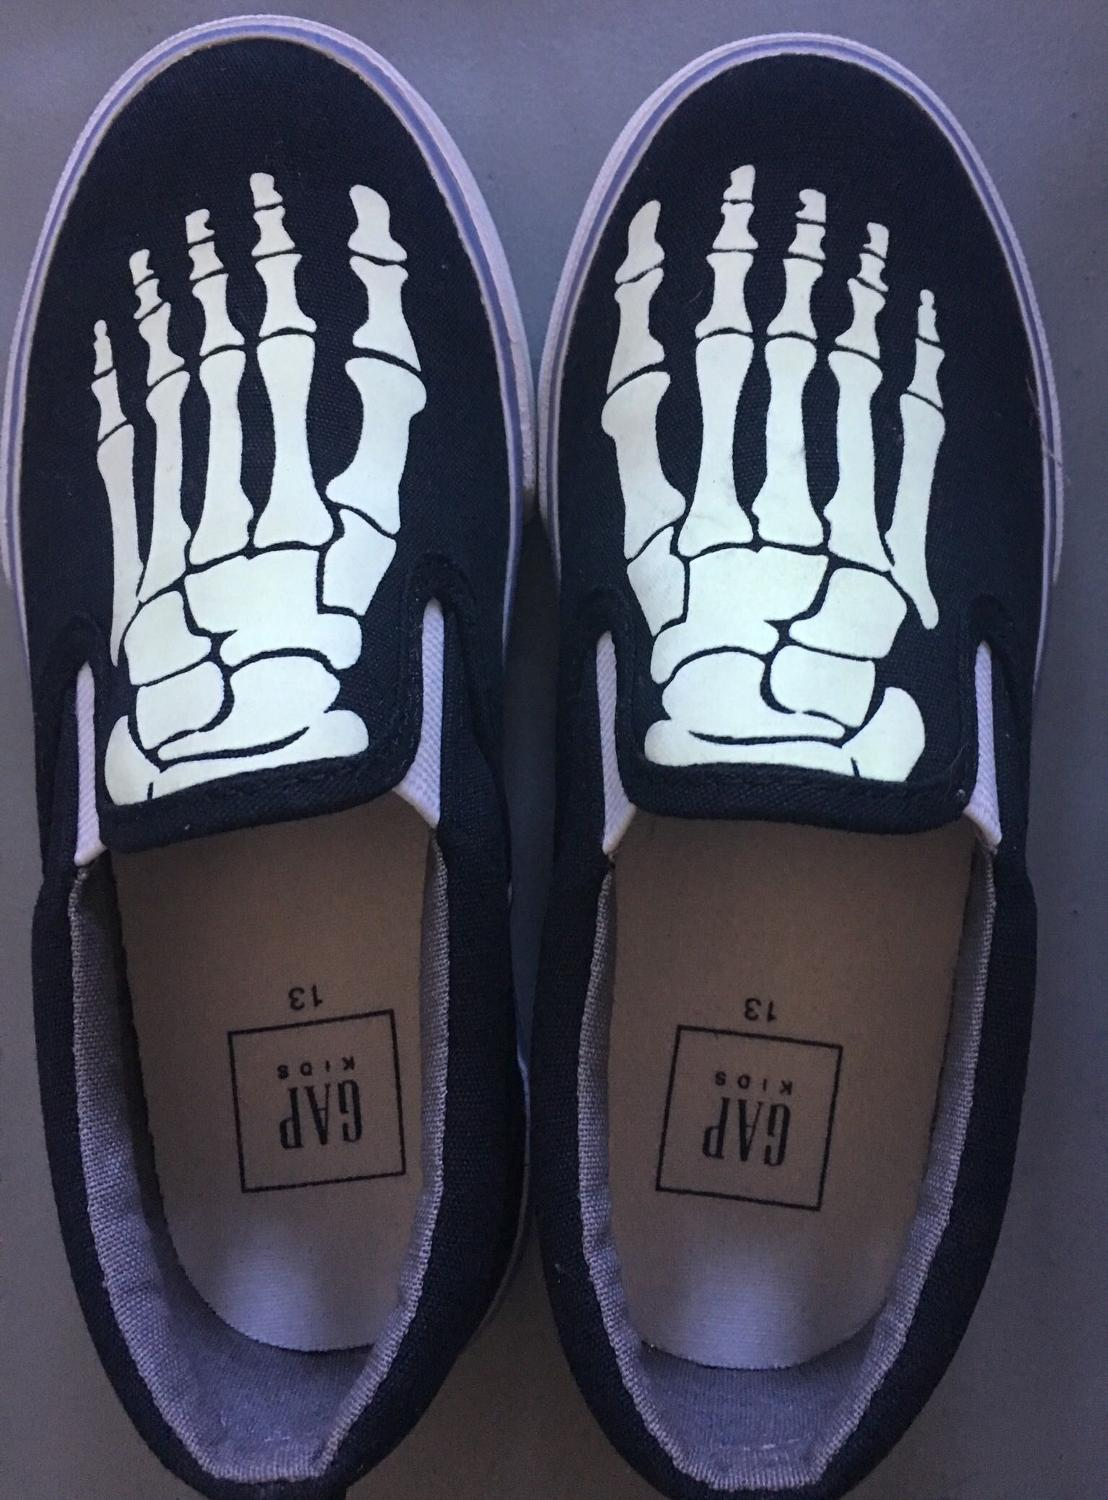 882cc9e471 Gap Kids Skeleton Slip On Shoes - Size 13 - New